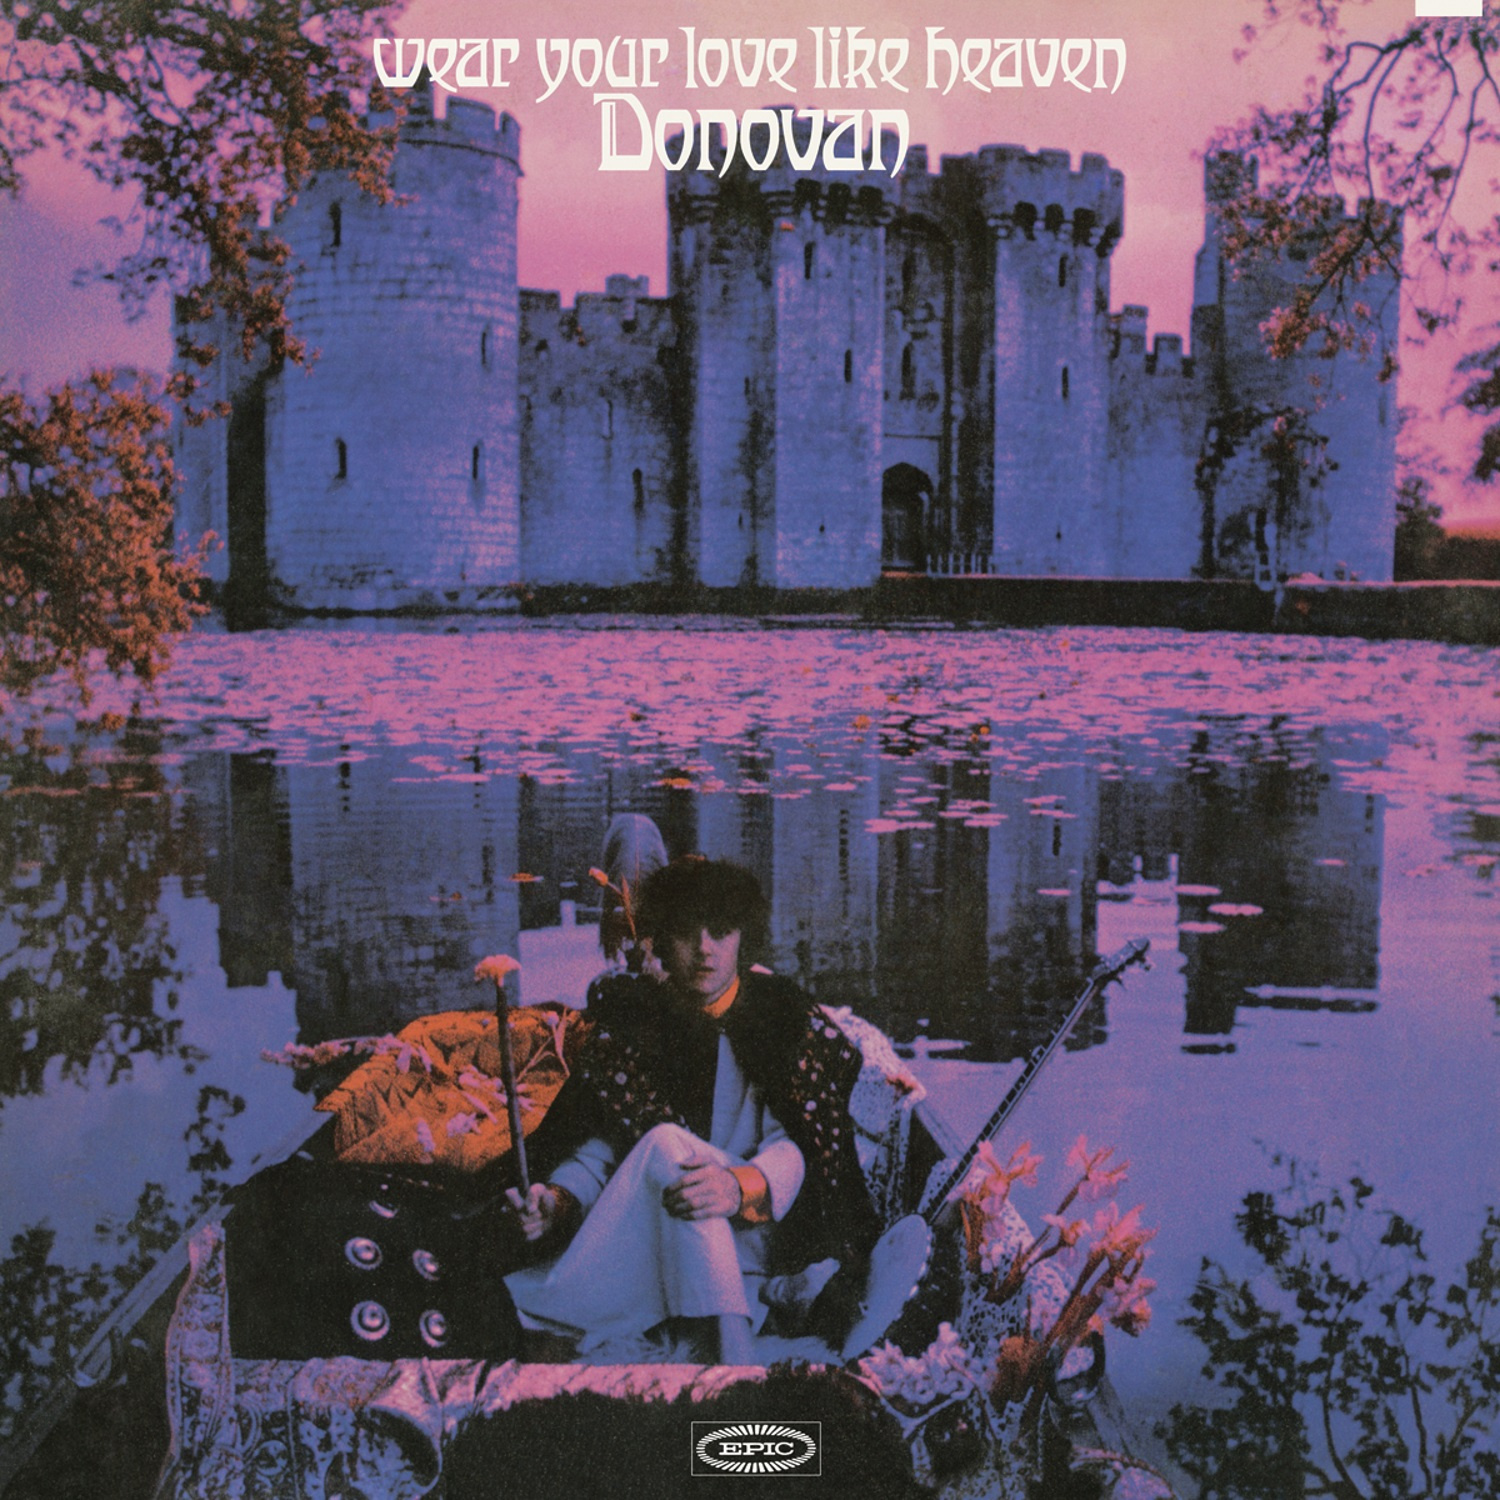 Donovan - Wear Your Love Like Heaven MONO EDITION LP